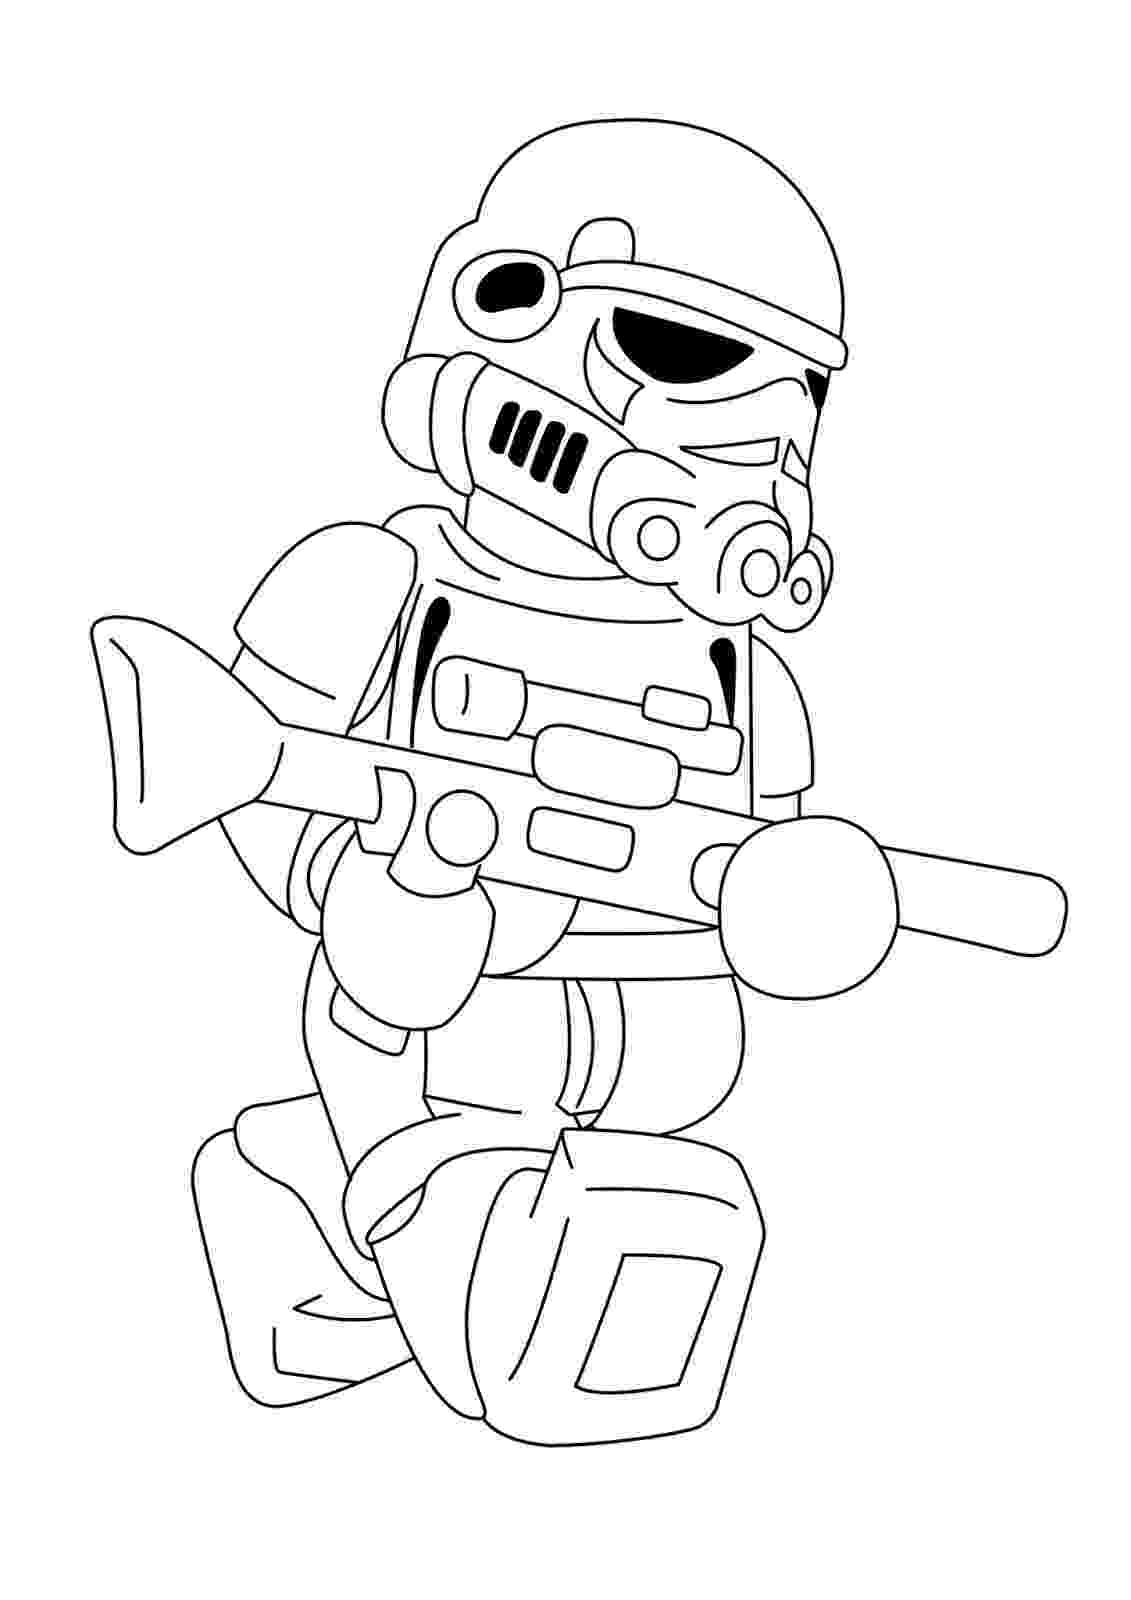 star wars coloring lego lego star wars coloring pages best coloring pages for kids coloring lego star wars